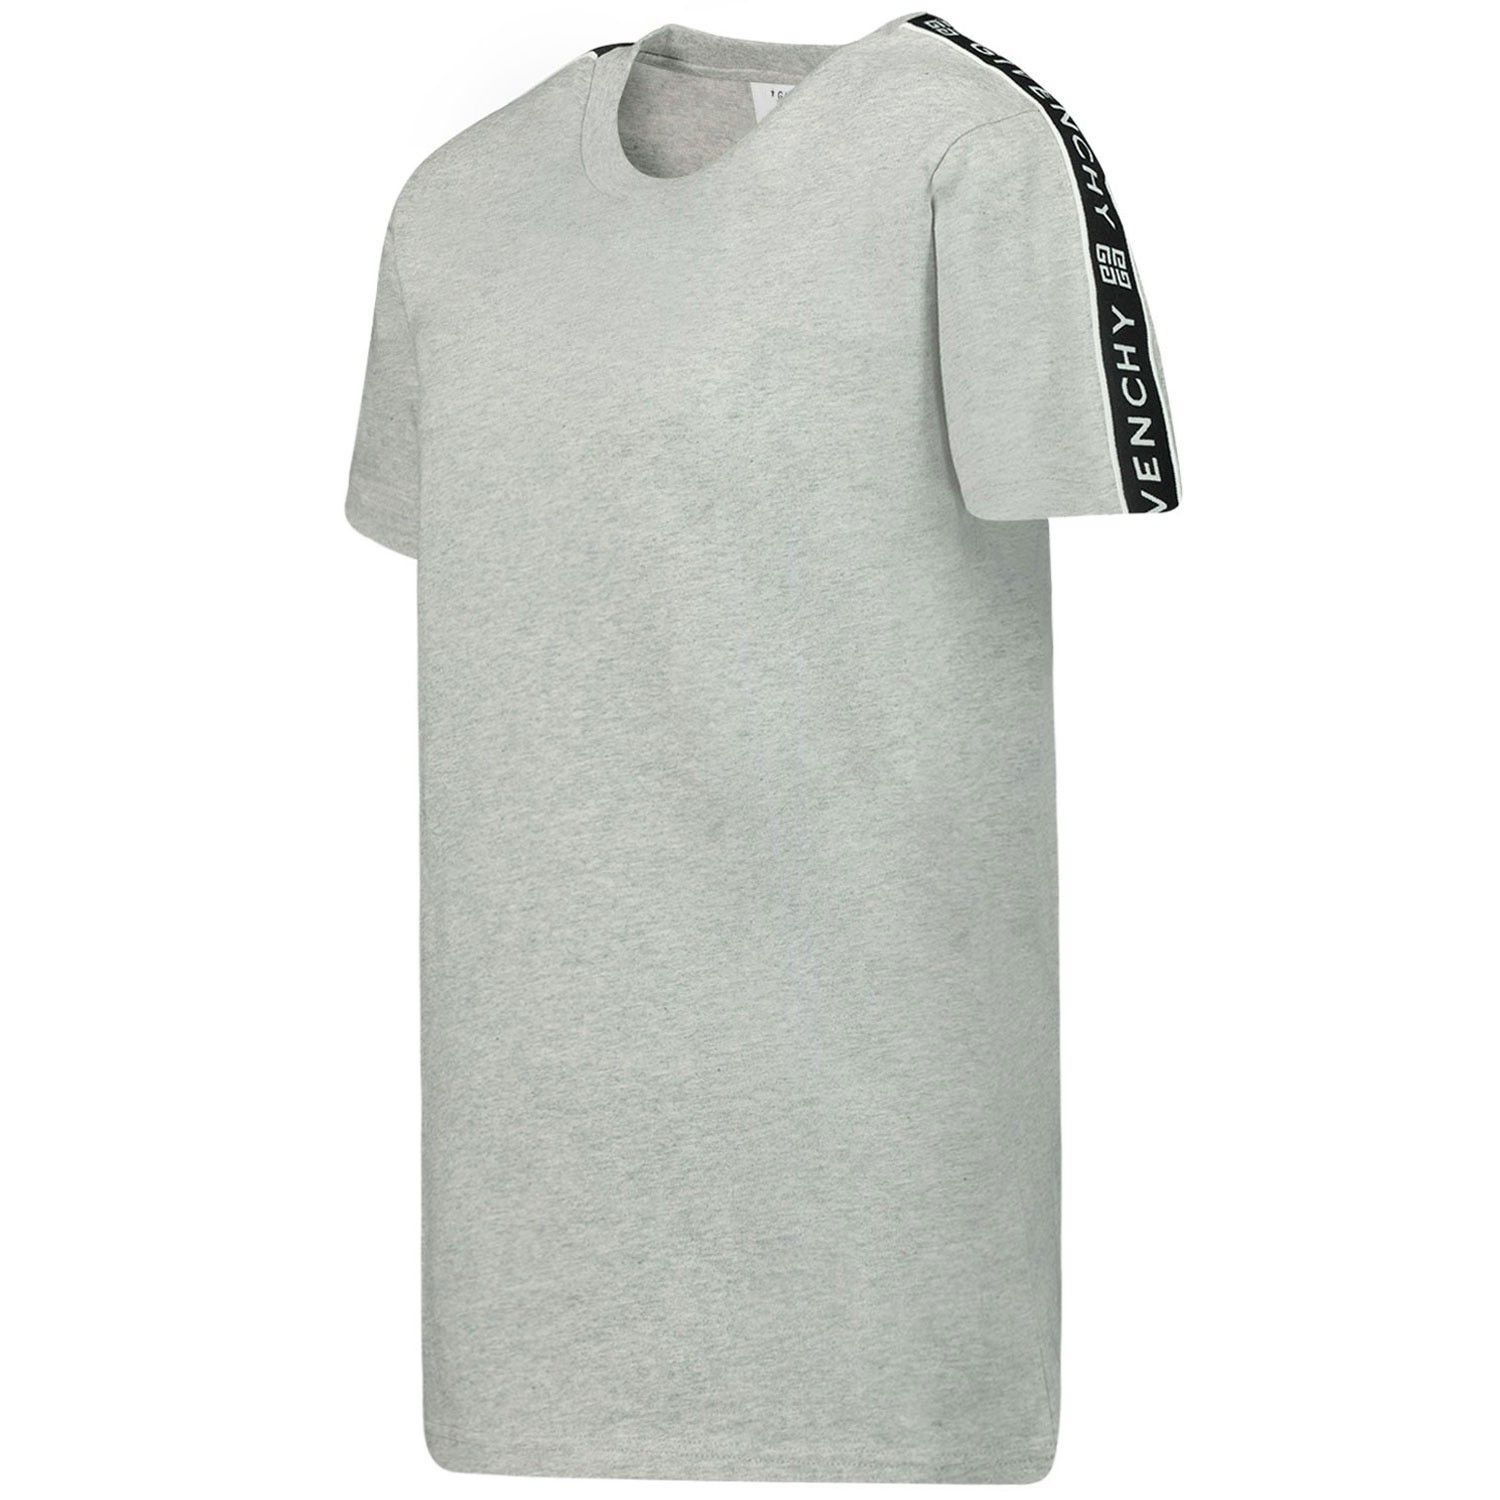 Picture of Givenchy H25174 kids t-shirt grey